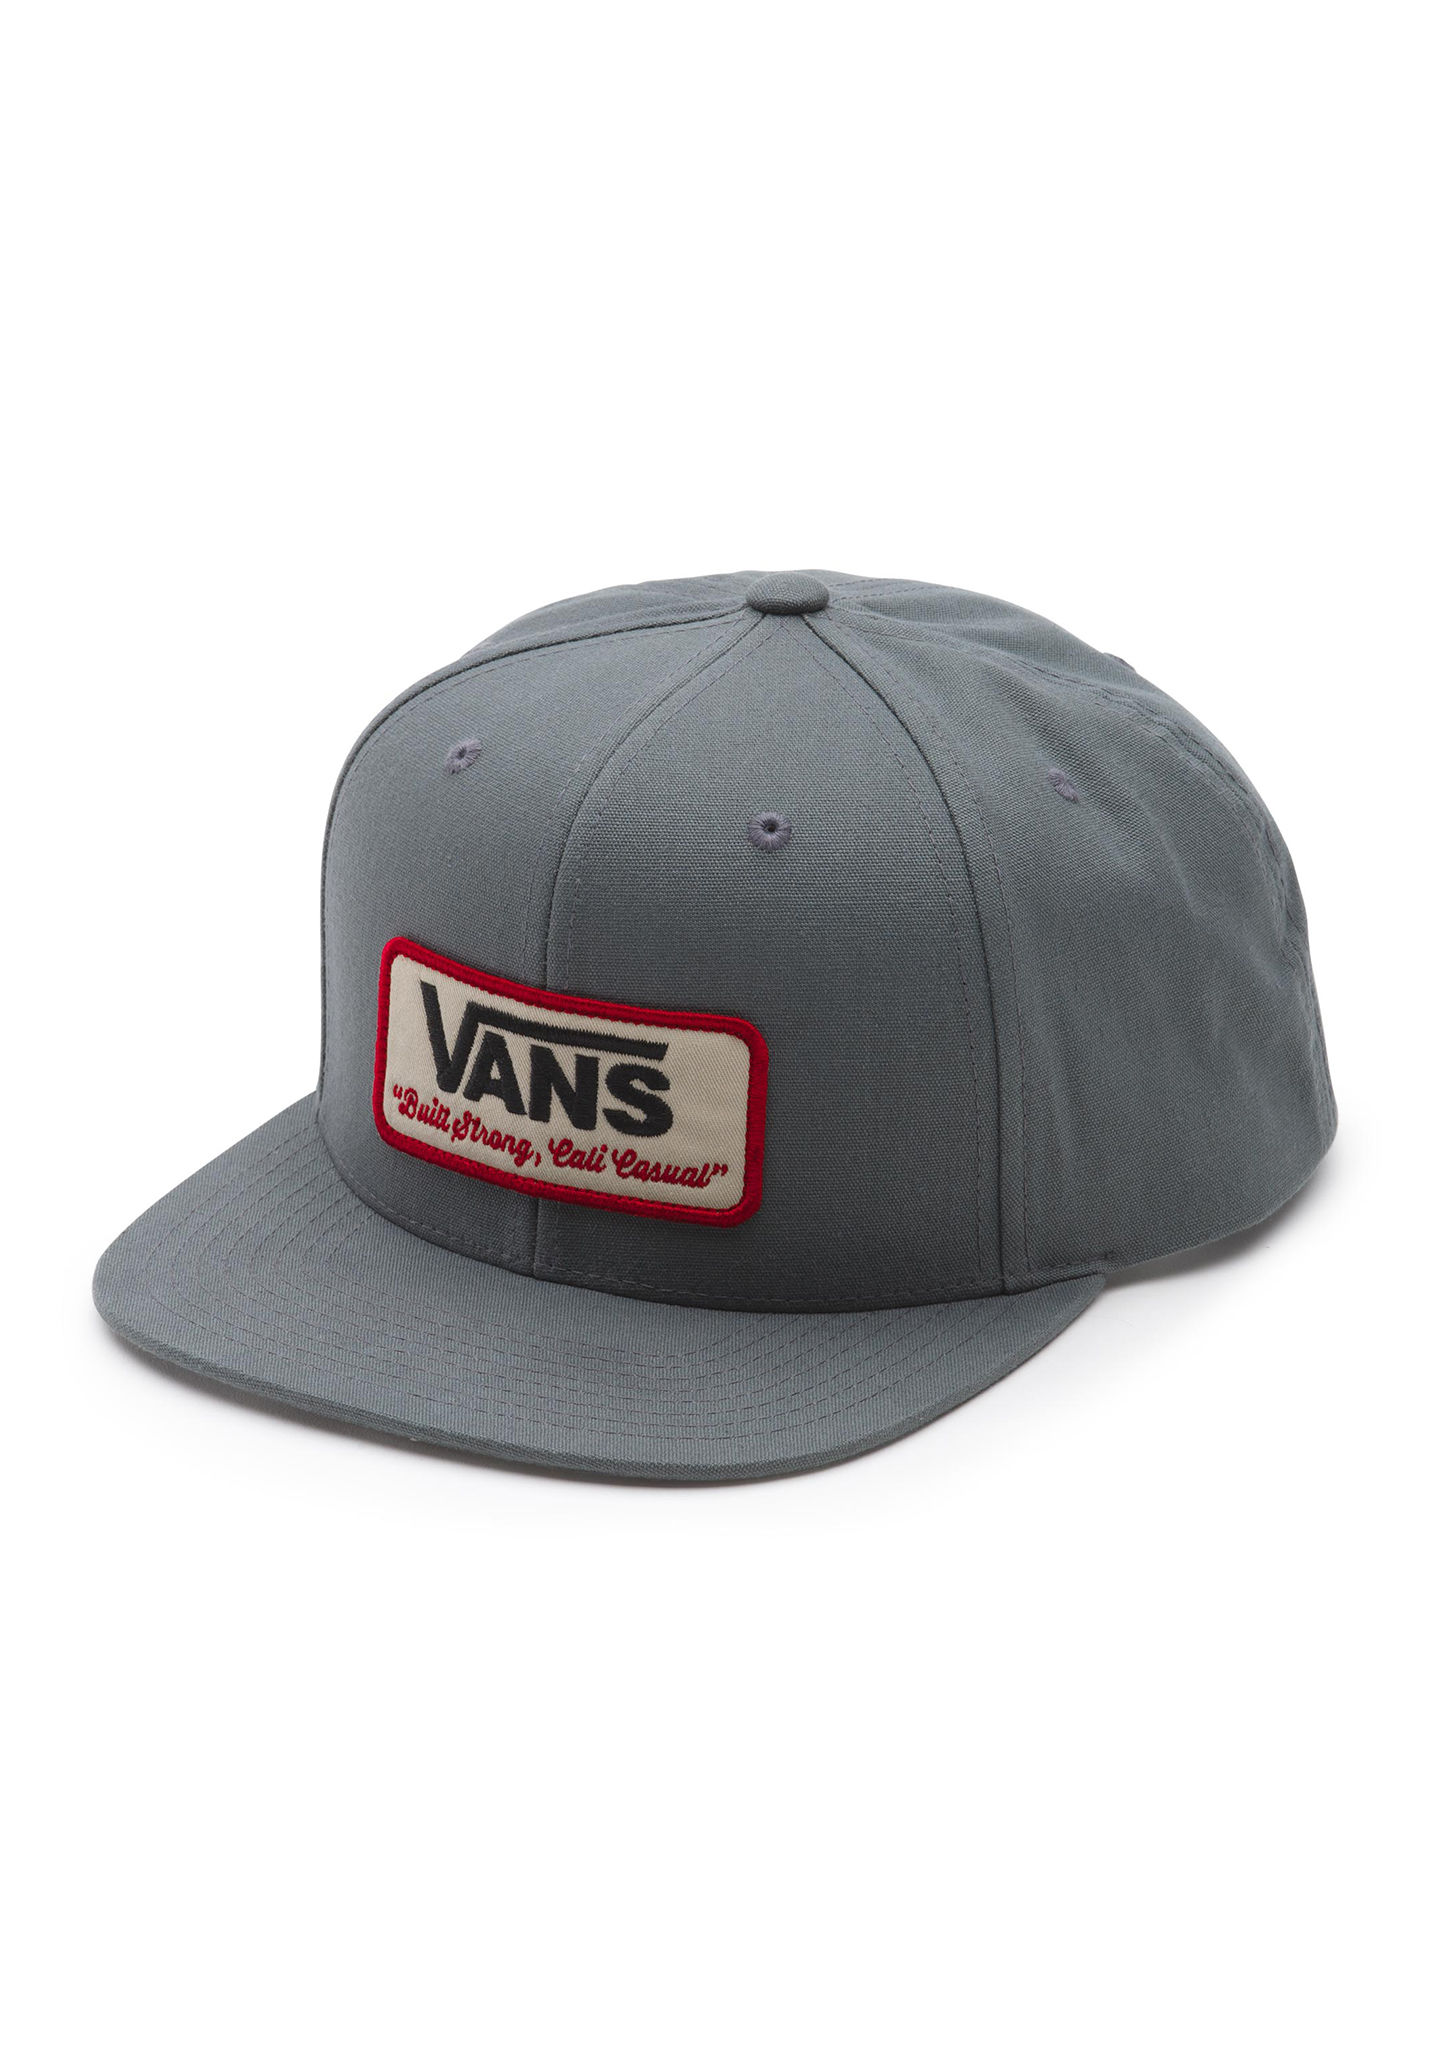 Vans Rowley Snapback - Snapback Cap for Men - Grey - Planet Sports 9a63bdc2b03